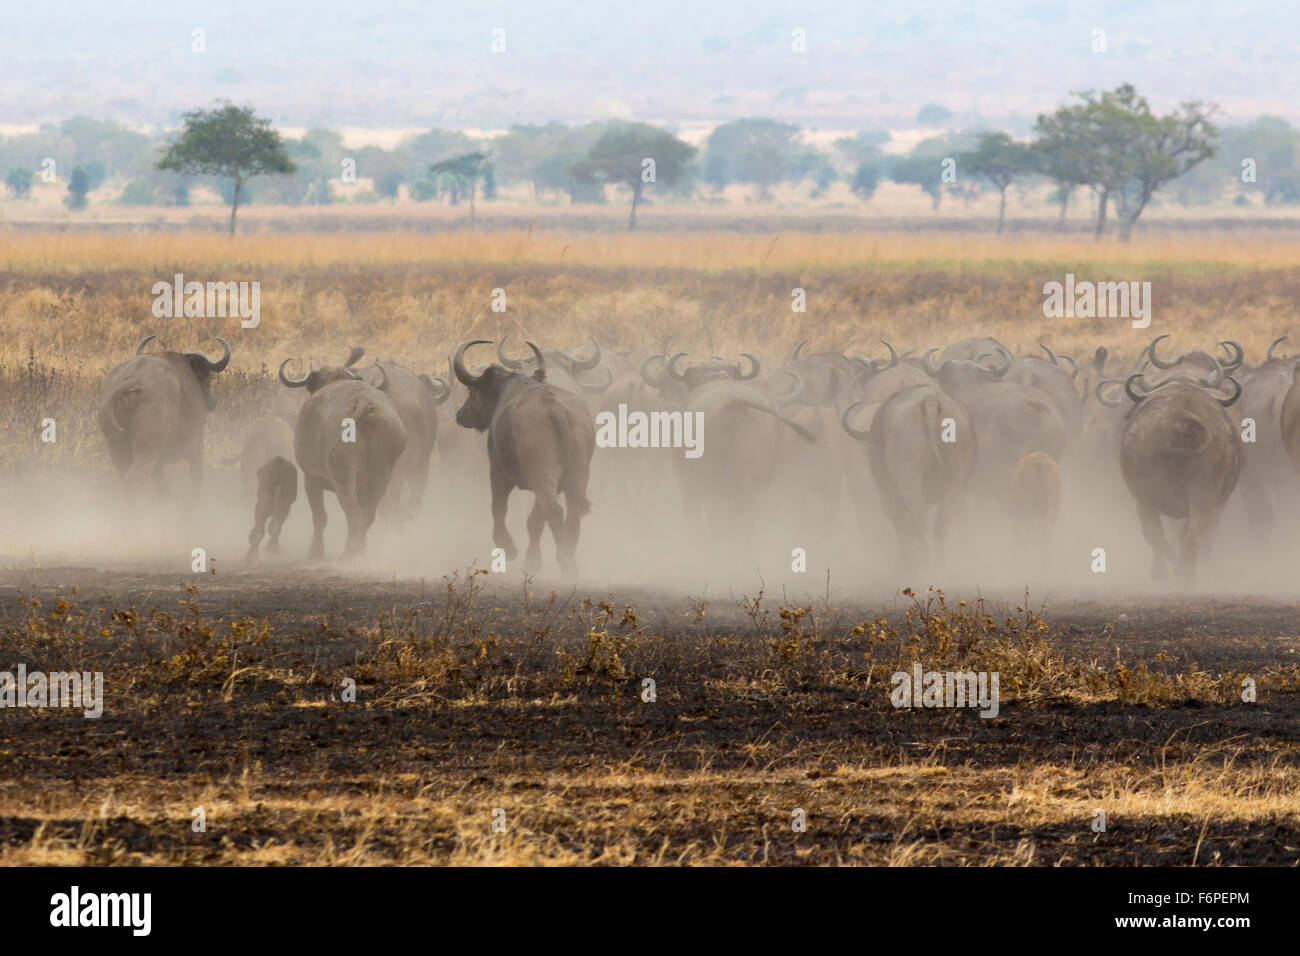 African bison stampede away in a dust cloud, photograph taken on safari in Tanzania Stock Photo